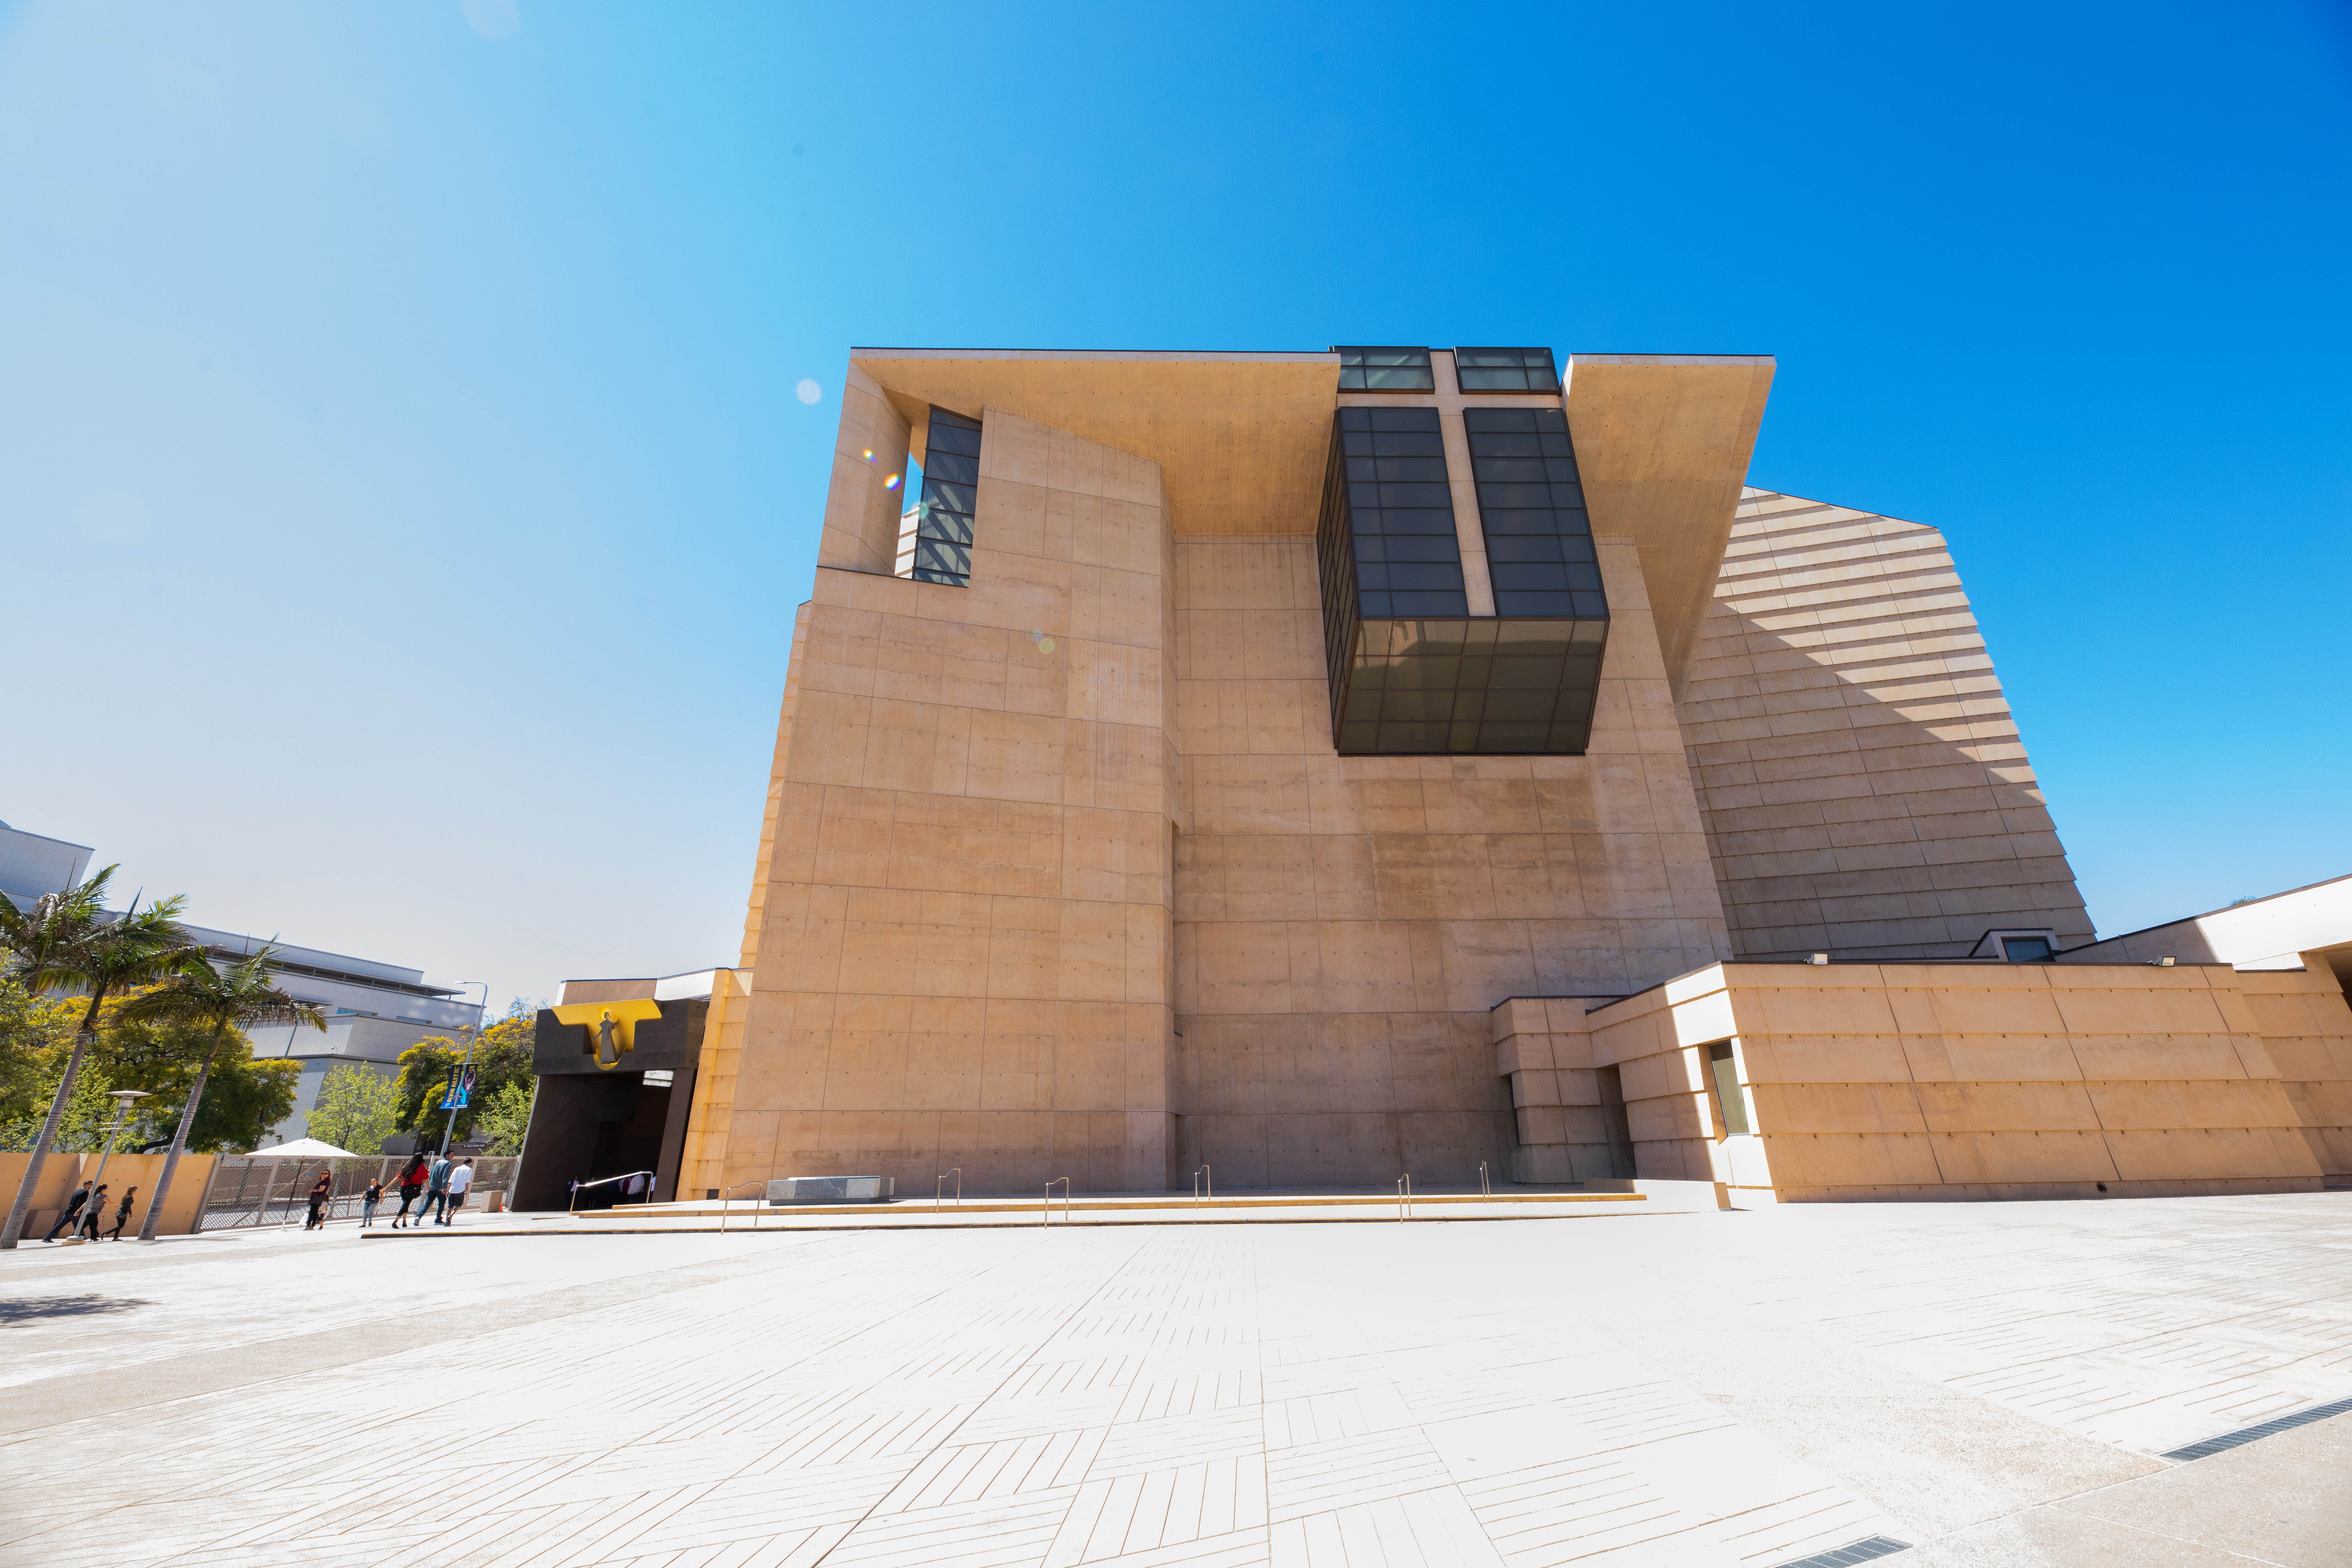 Exterior of the Cathedral of Our Lady of the Angles